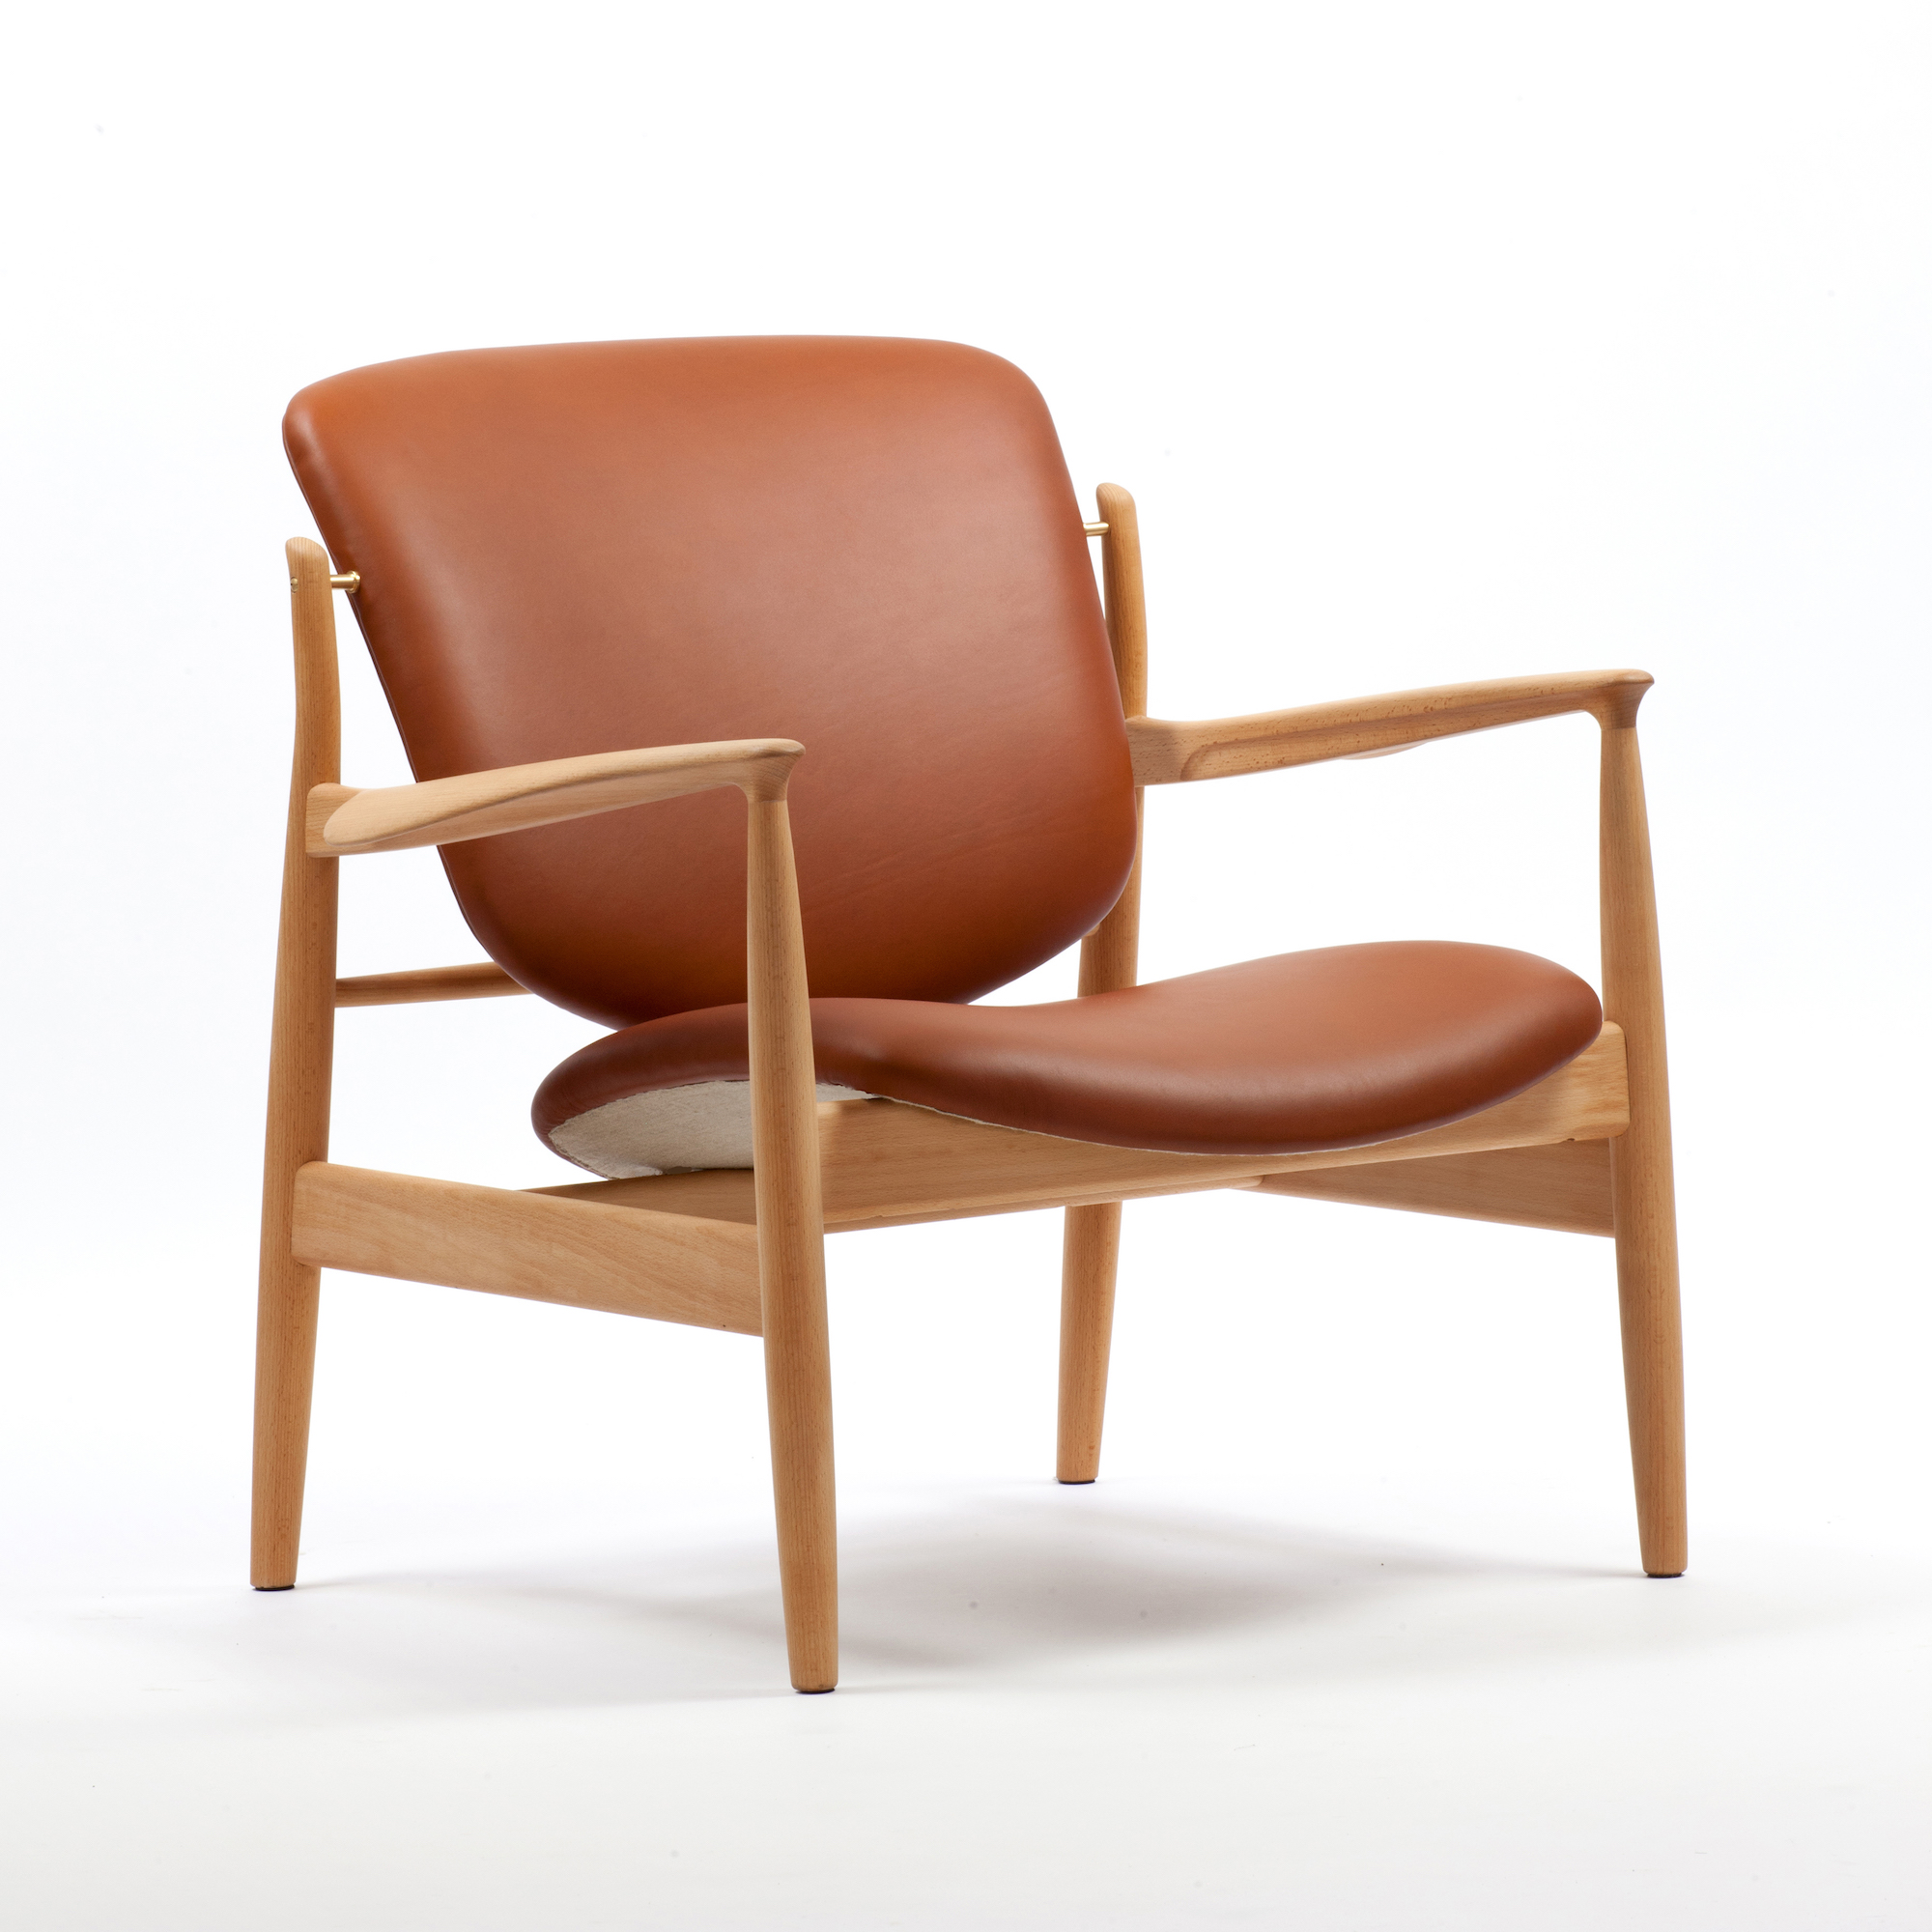 Elegant The France Chair Was Originally Put Into Production In 1956 By The Company  France U0026 Daverkosen U2013 Later Named France U0026 Son. During The 50u0027s The English  ...